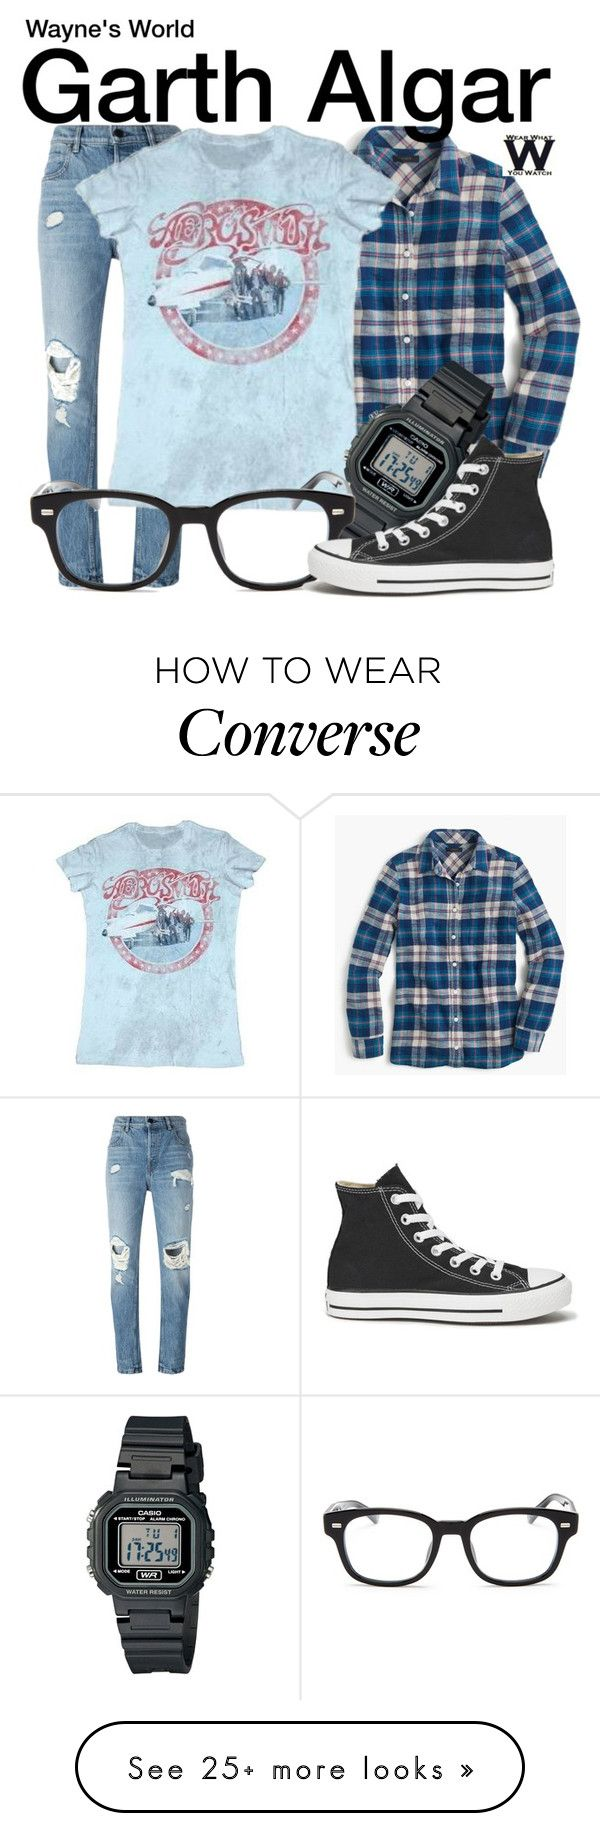 """""""Wayne's World"""" by wearwhatyouwatch on Polyvore featuring Alexander Wang, J.Crew, Casio, Gucci, Converse, wearwhatyouwatch and film"""